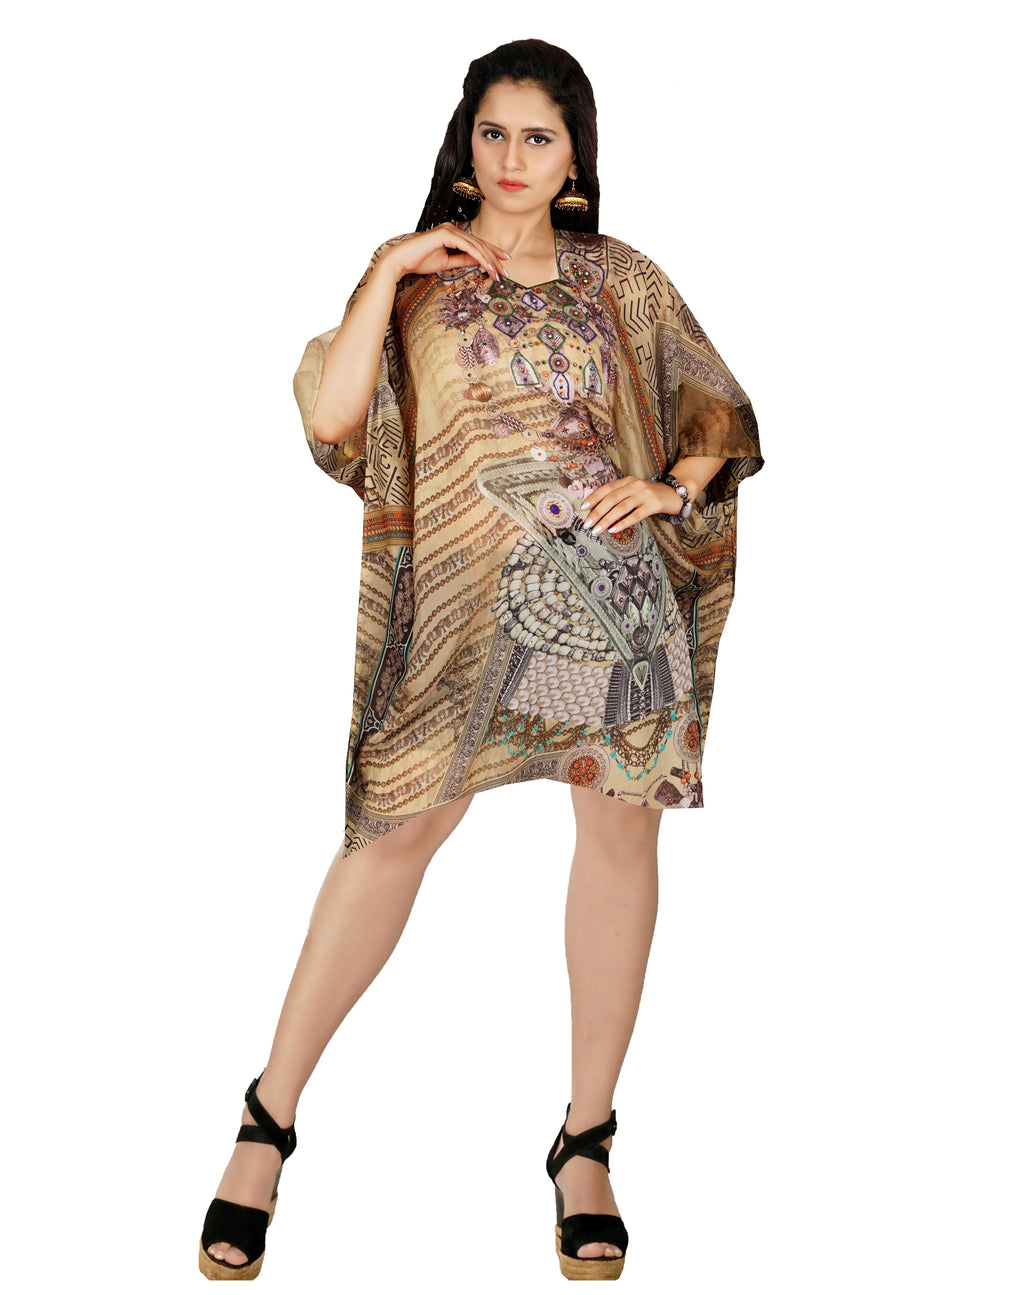 Resort wear for women Silk dress for women luxury resort wear Caftan Dress Elegant kaftan - Silk kaftan